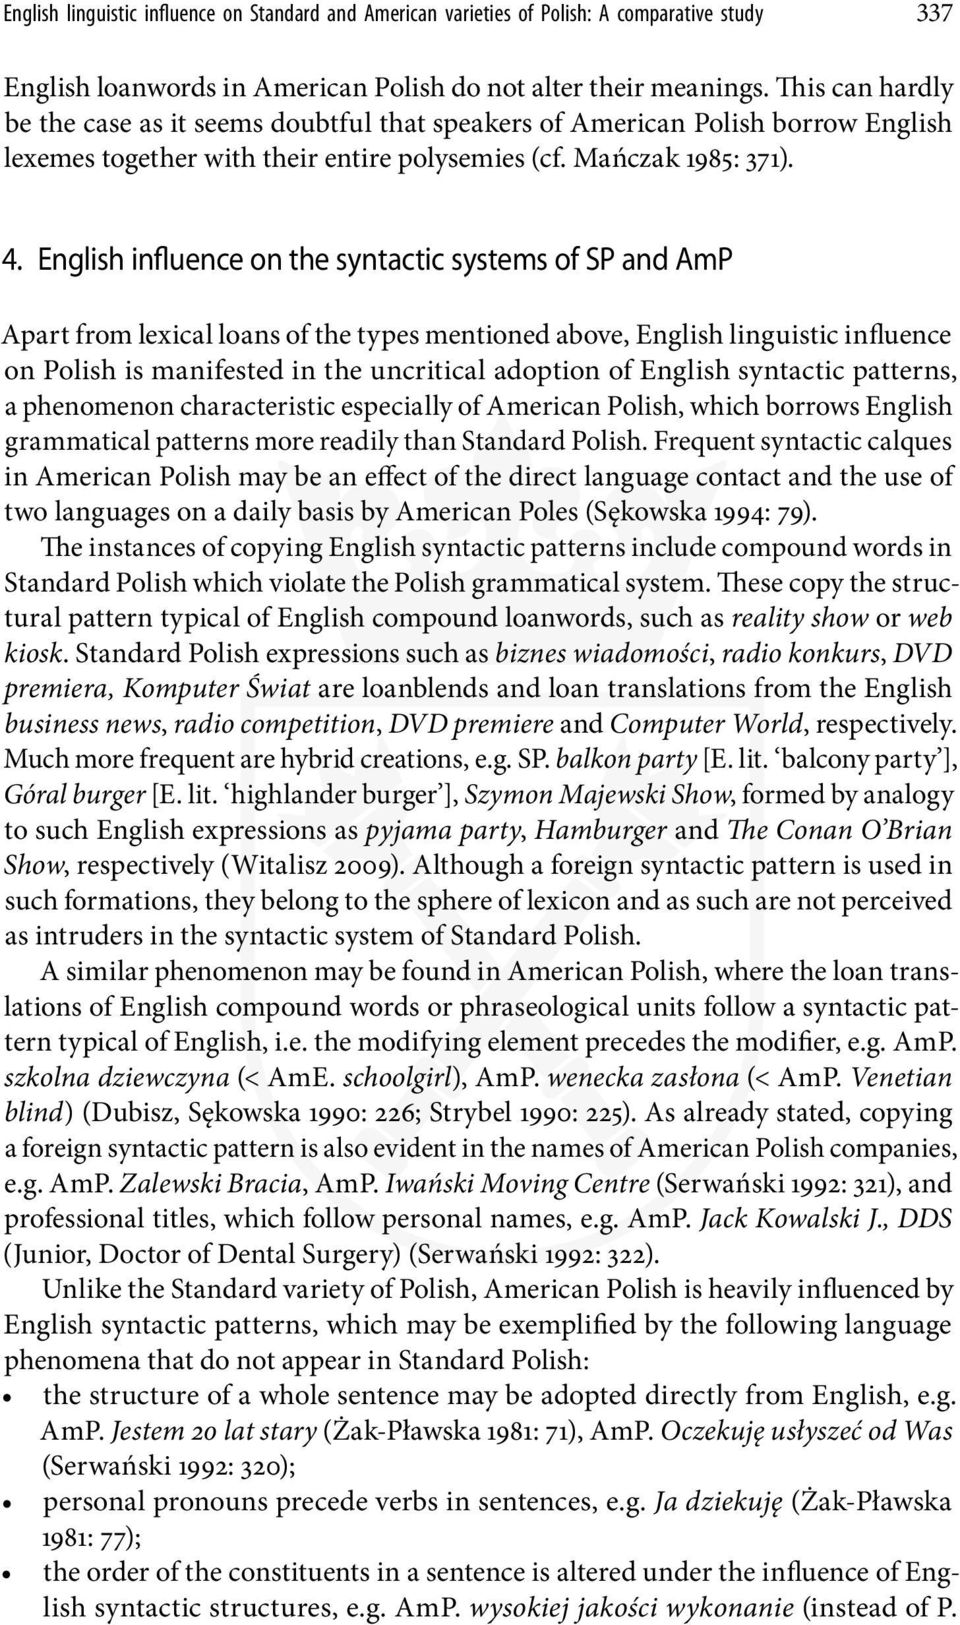 English influence on the syntactic systems of SP and AmP Apart from lexical loans of the types mentioned above, English linguistic influence on Polish is manifested in the uncritical adoption of